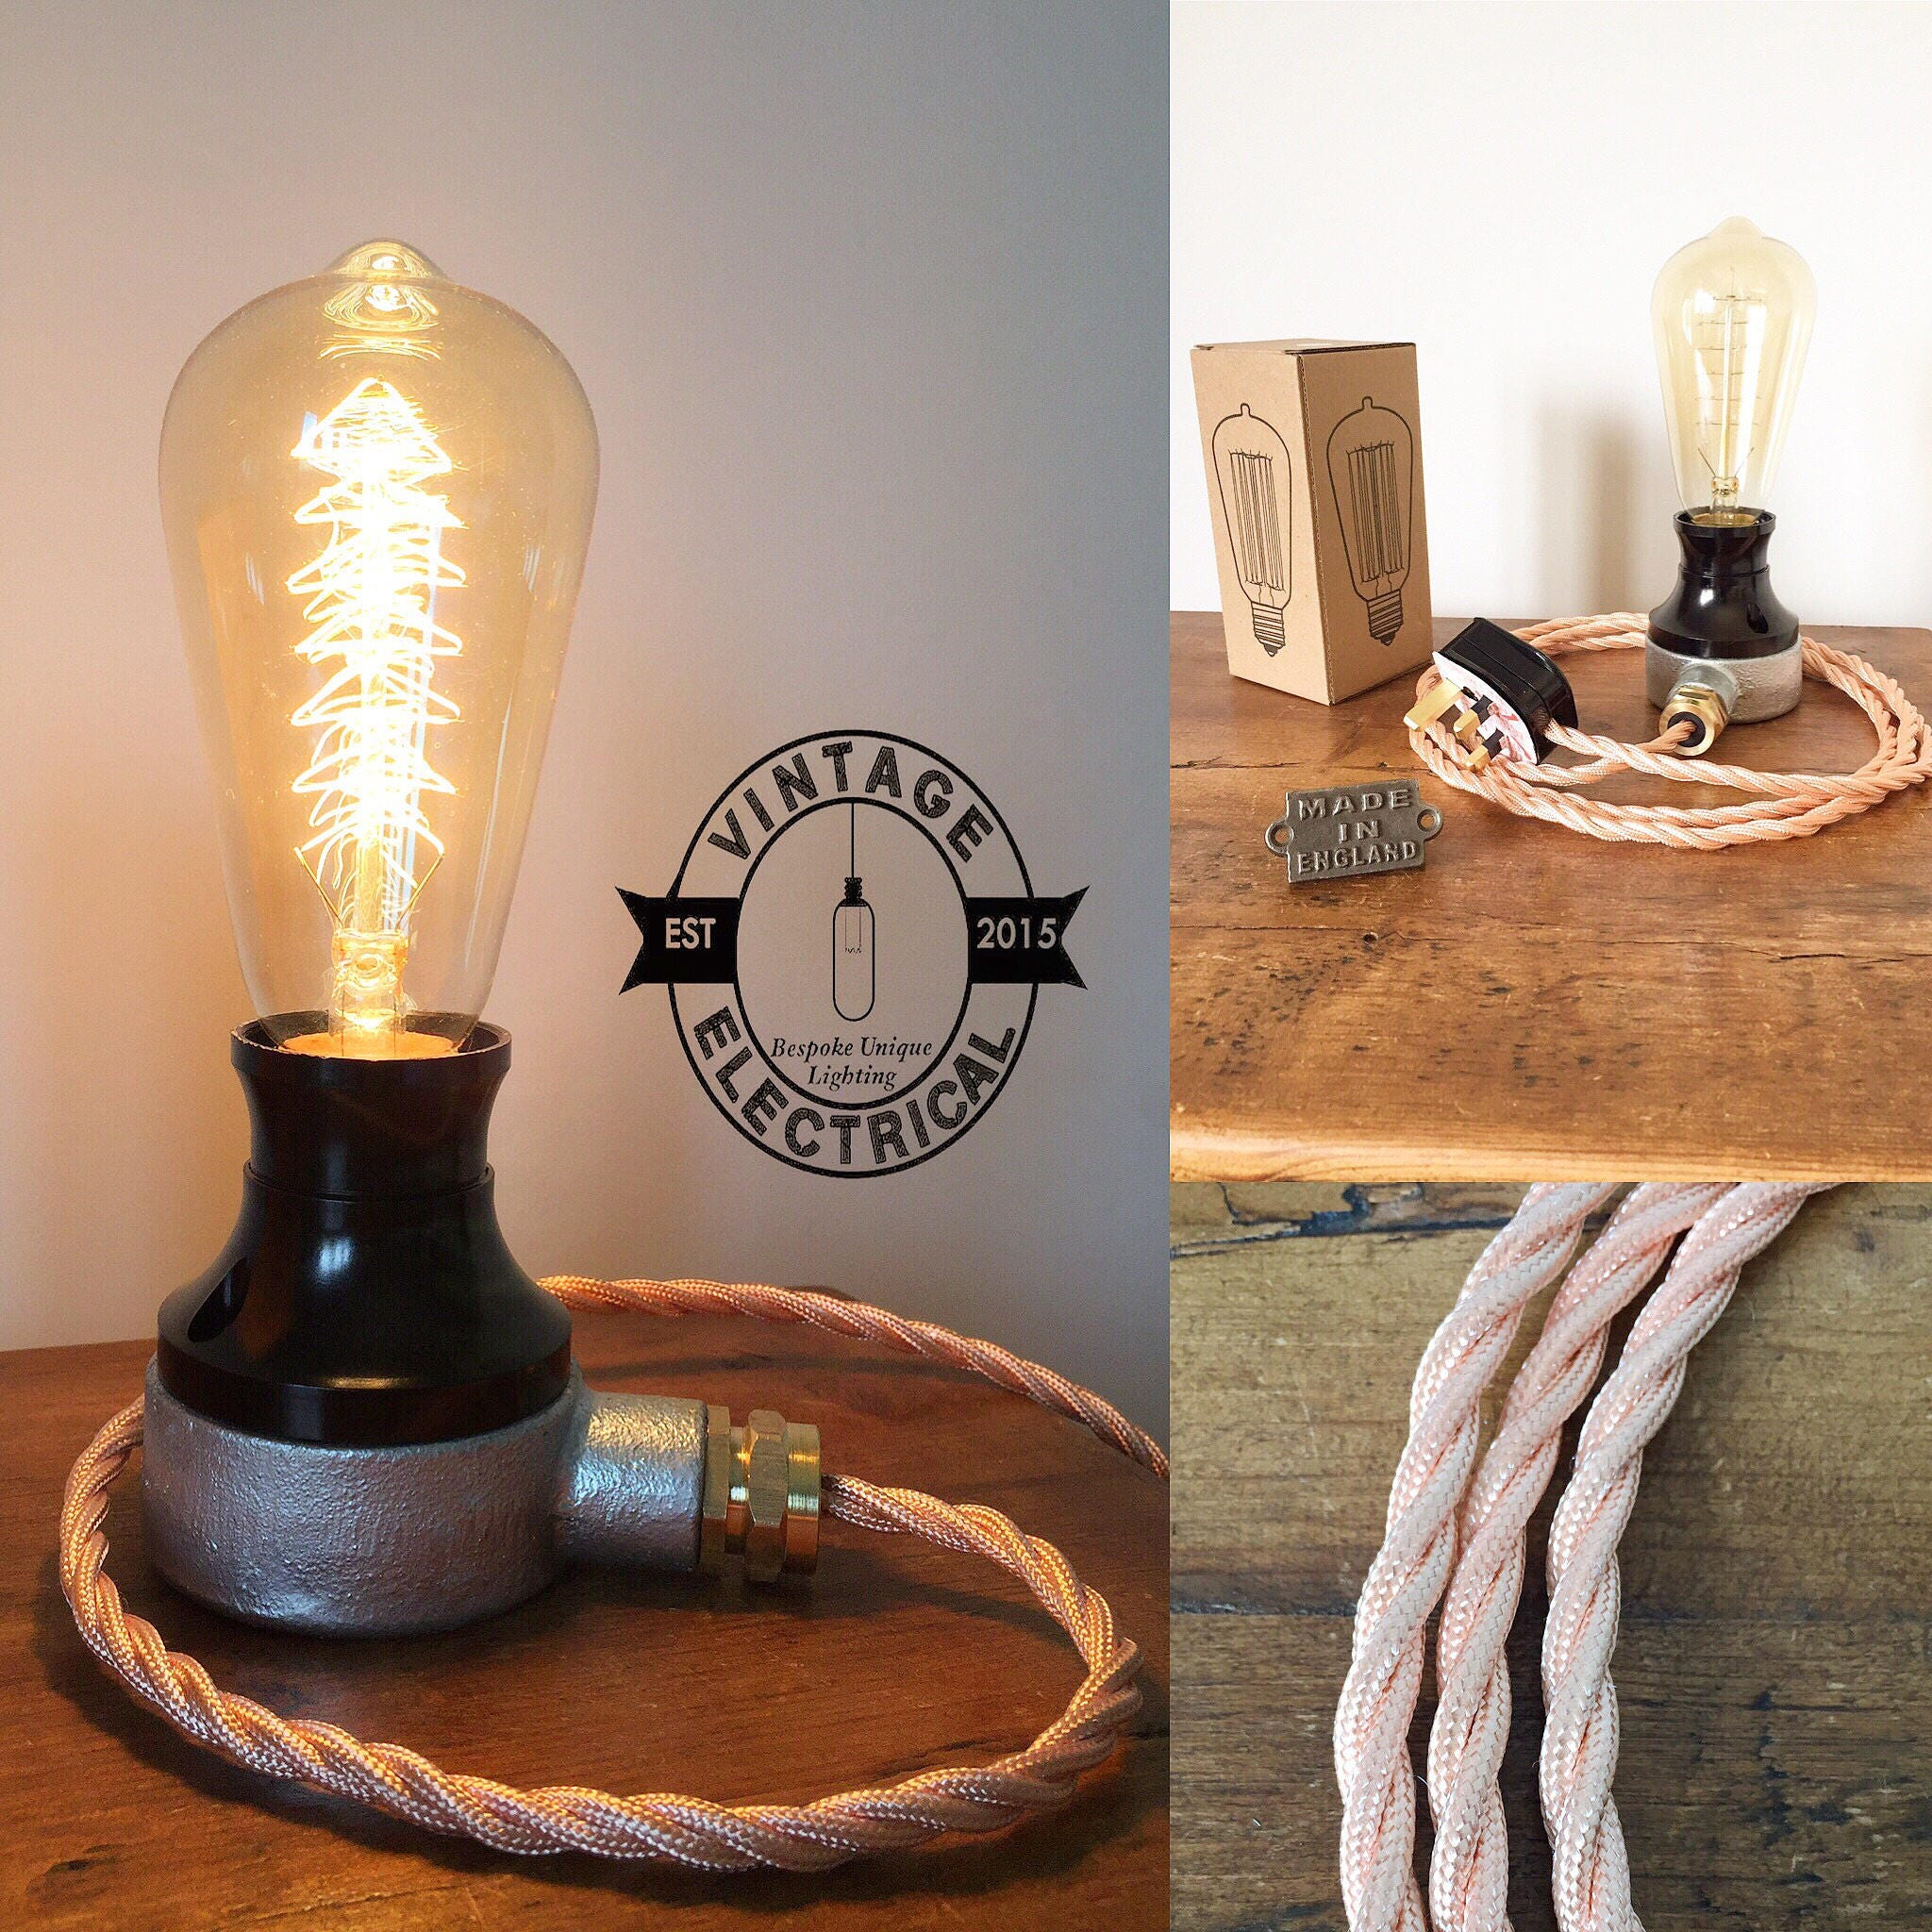 The Barford Bakelite Copper Coloured Cable Industrial Table Light Vintage Edison Filament